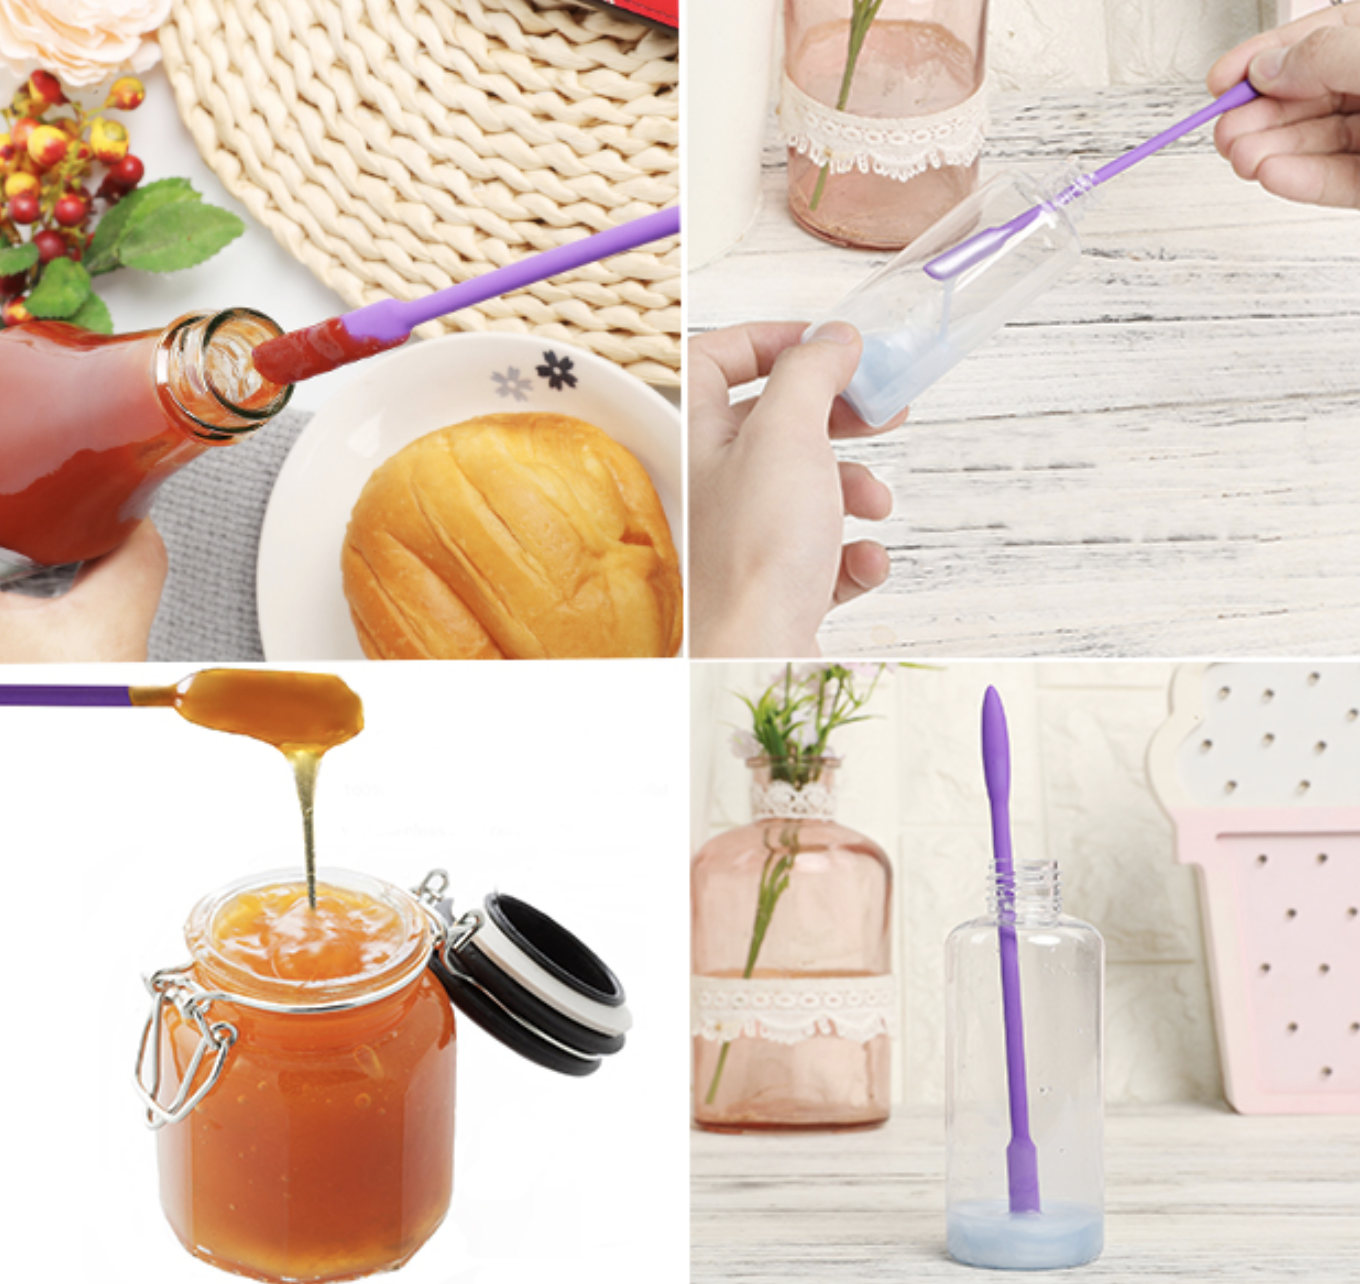 Four different product images showing the spatulas used to remove contents from beauty containers, food jars, and ketchup bottle